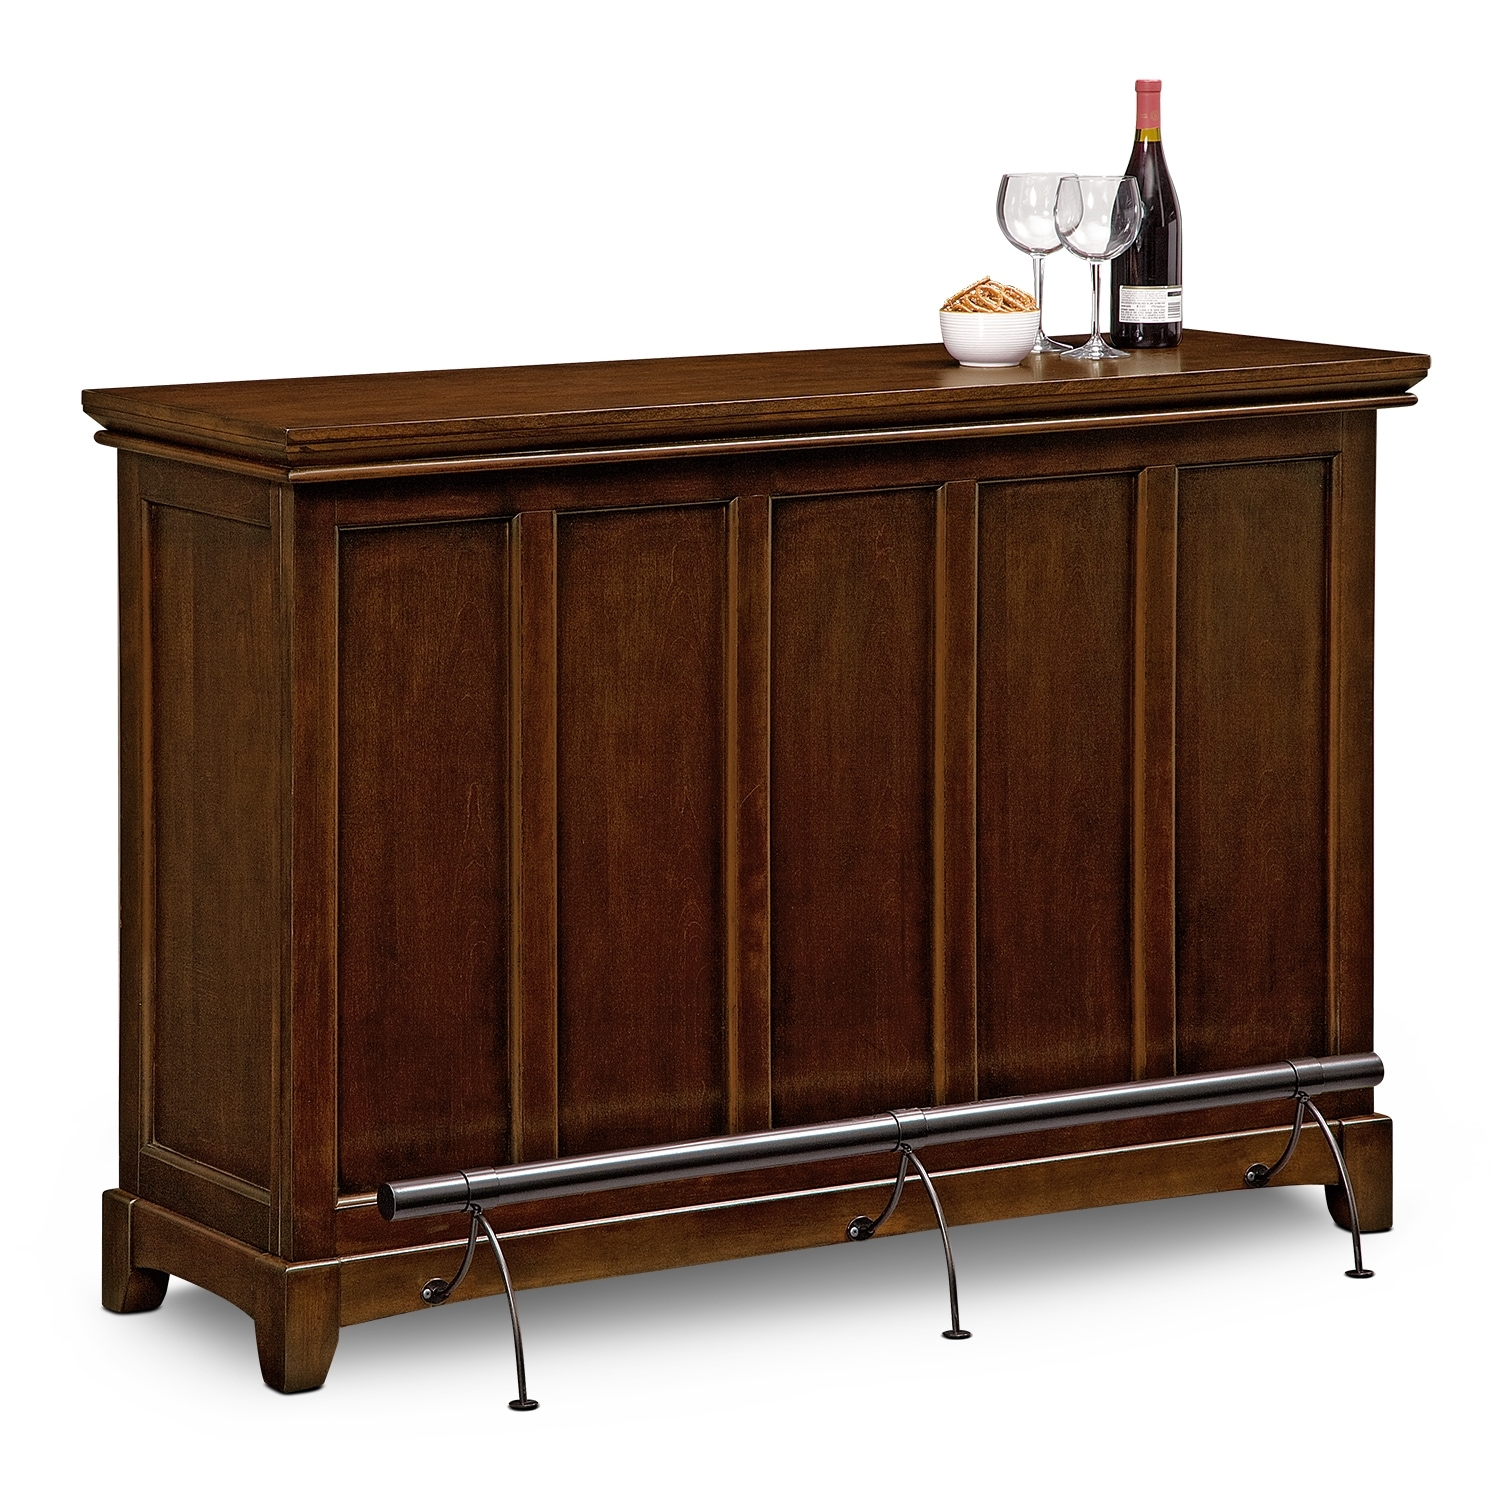 Accent and Occasional Furniture - Carlton Bar